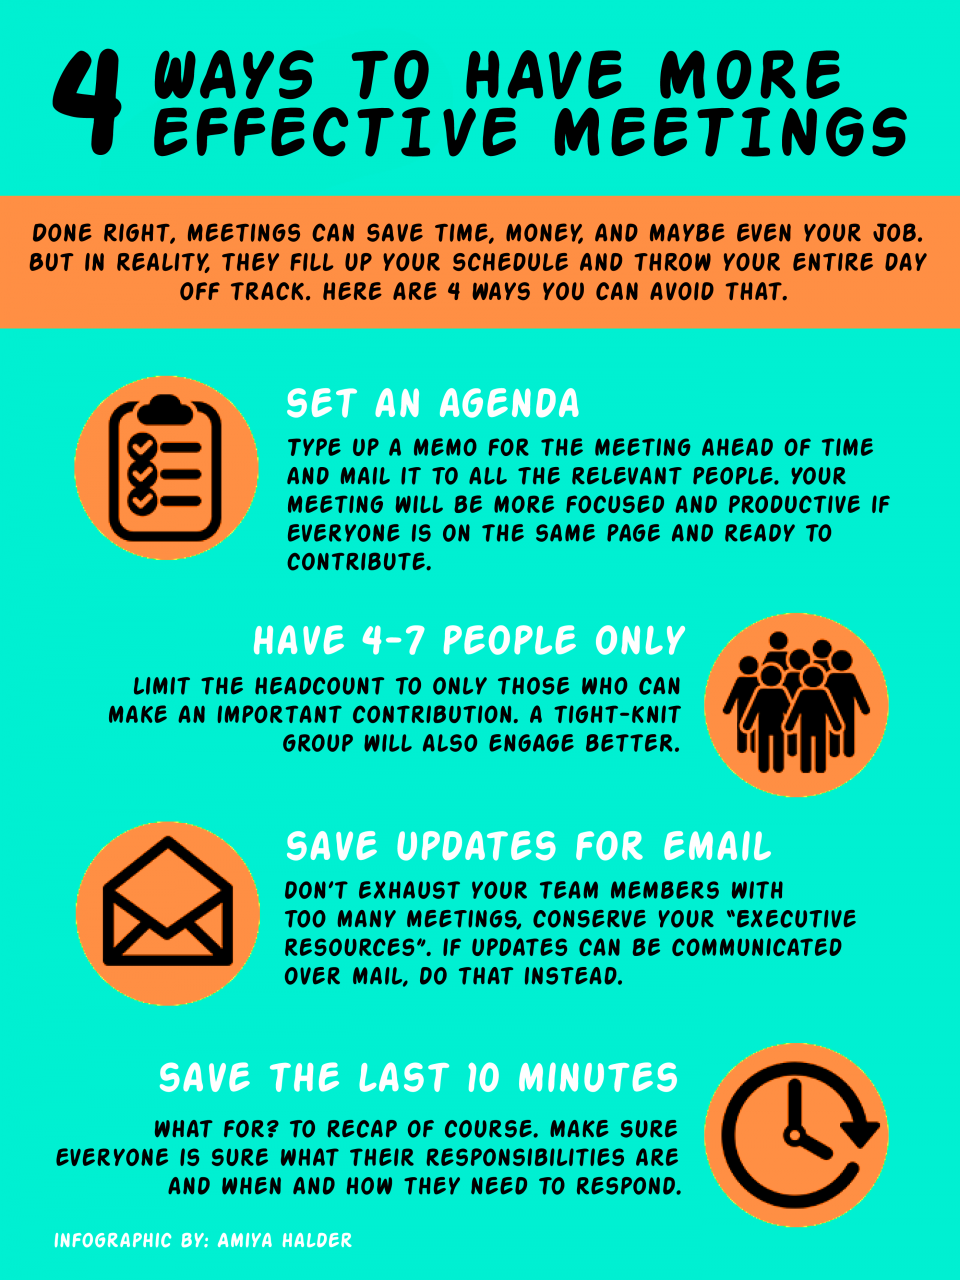 4 ways to have more effective meetings  infographic